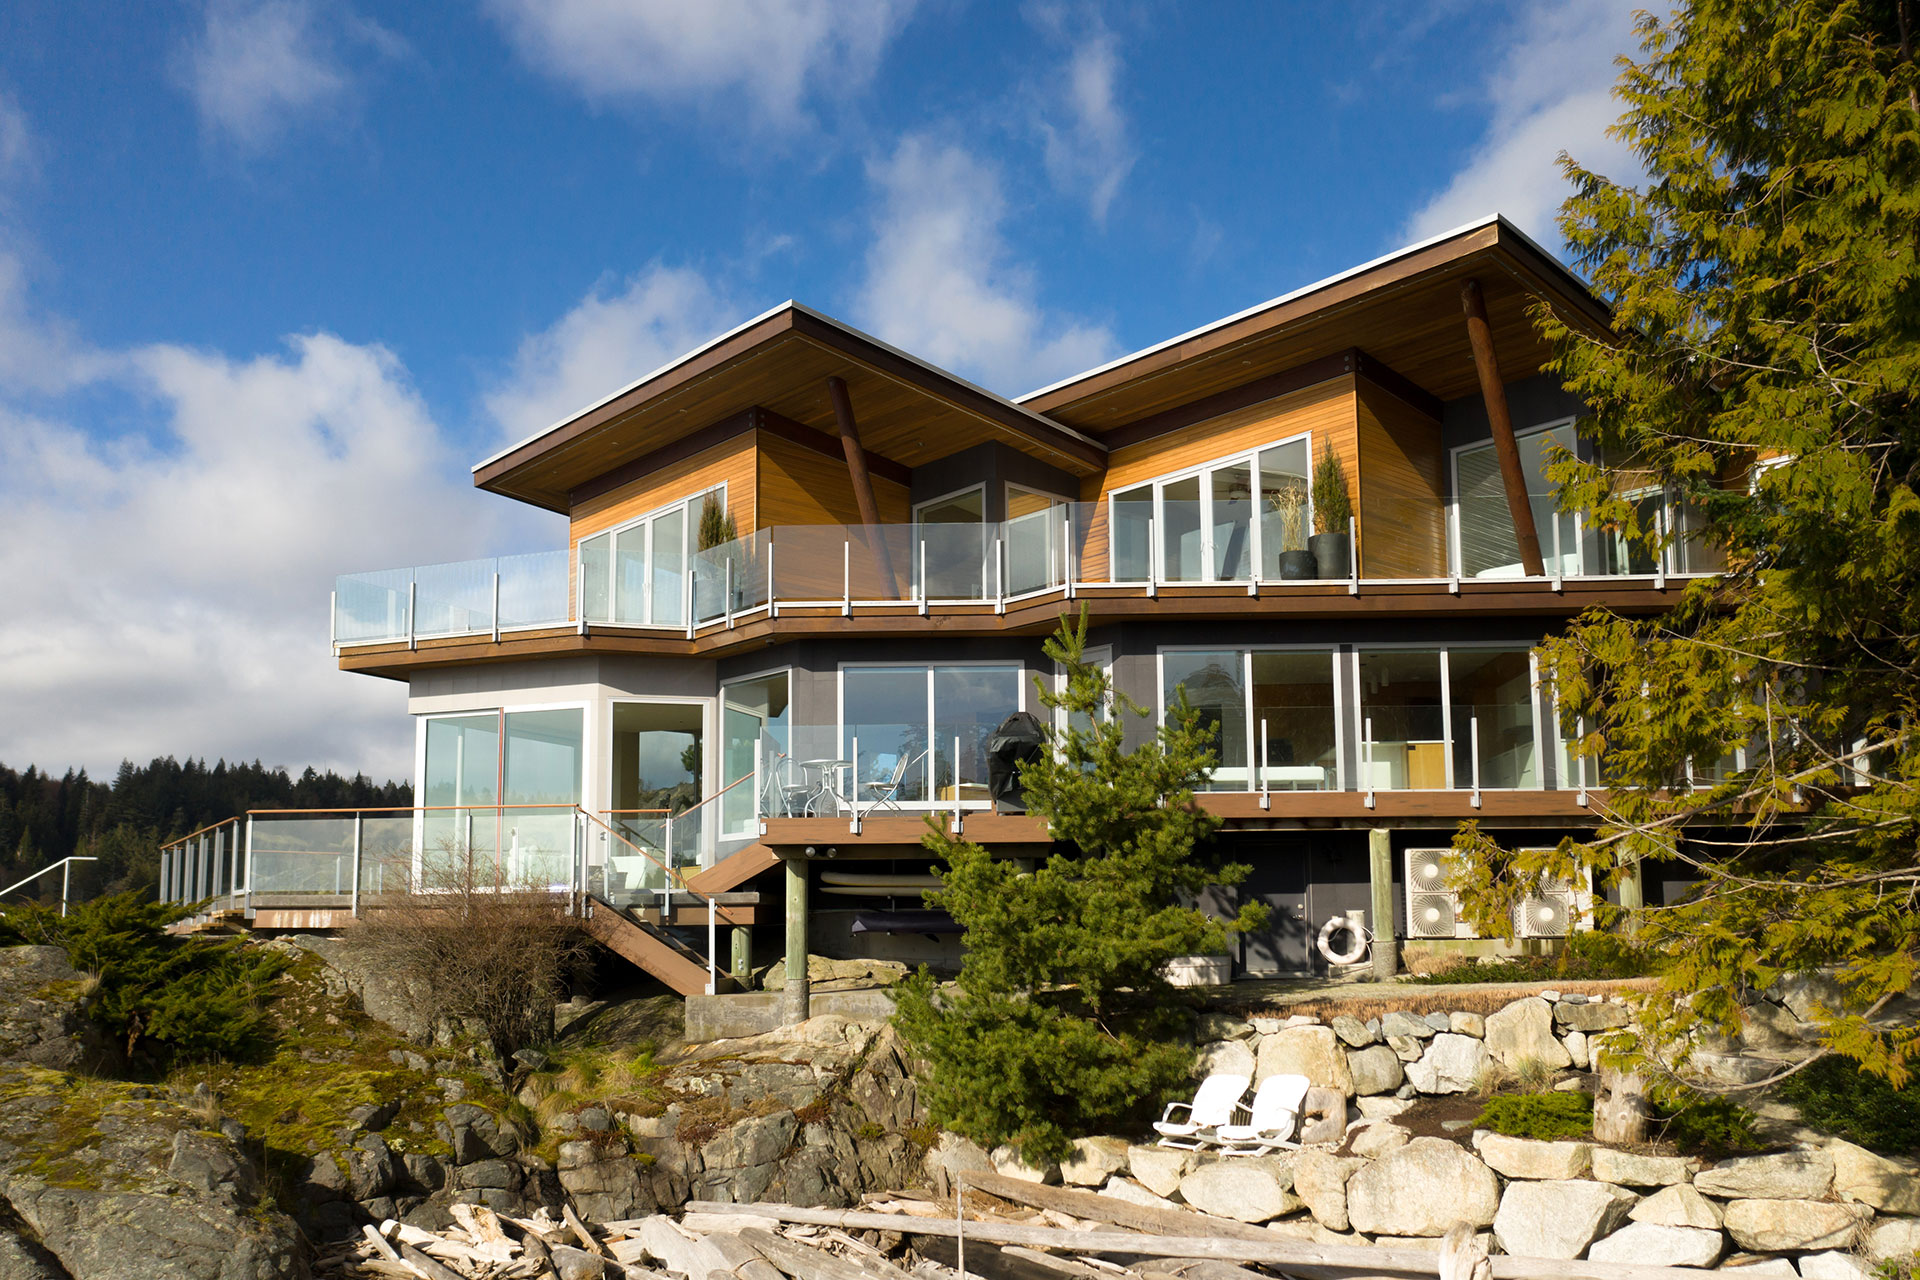 oceanfront Pointhouse Bed and Breakfast